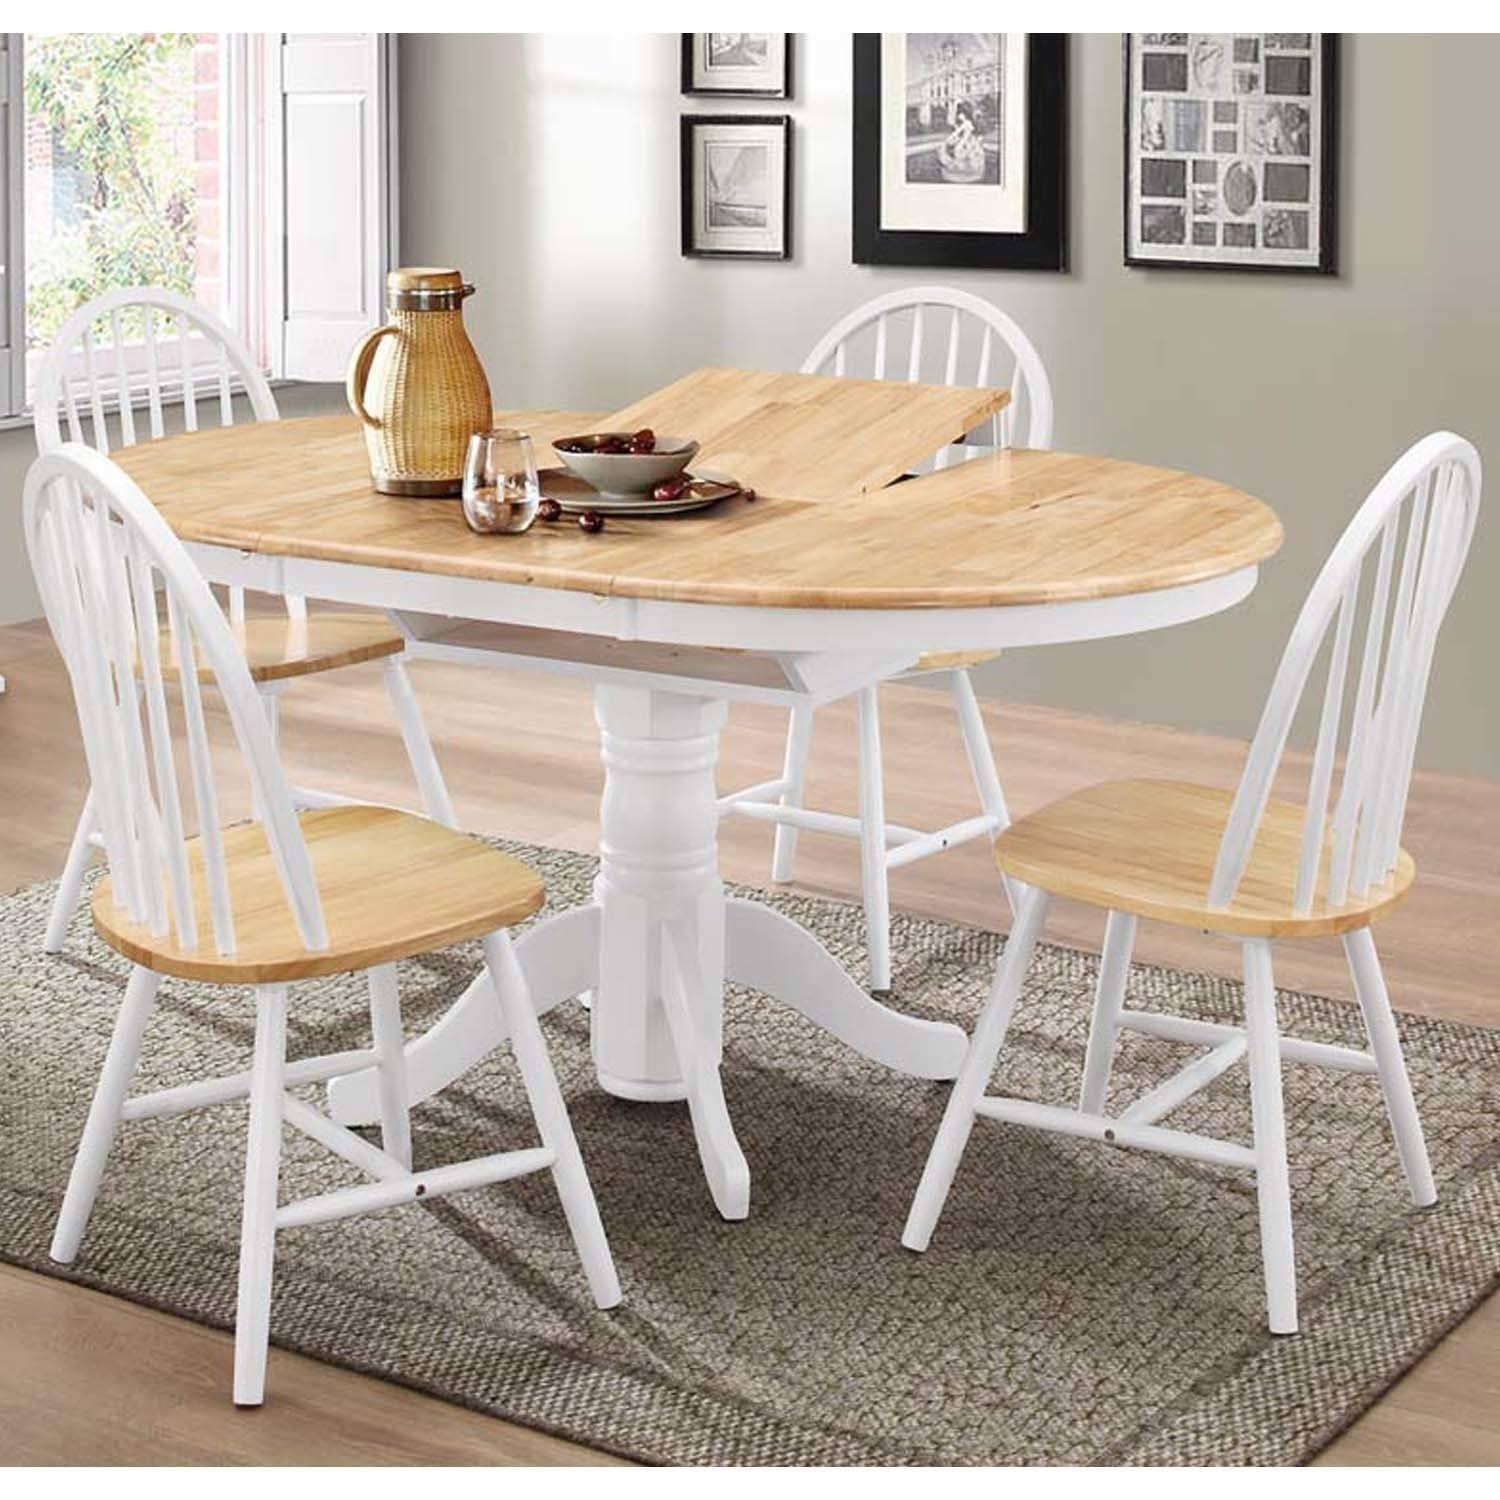 Round Extendable Dining Set With 4 Chairs In Oak White Rhode Island Furniture123